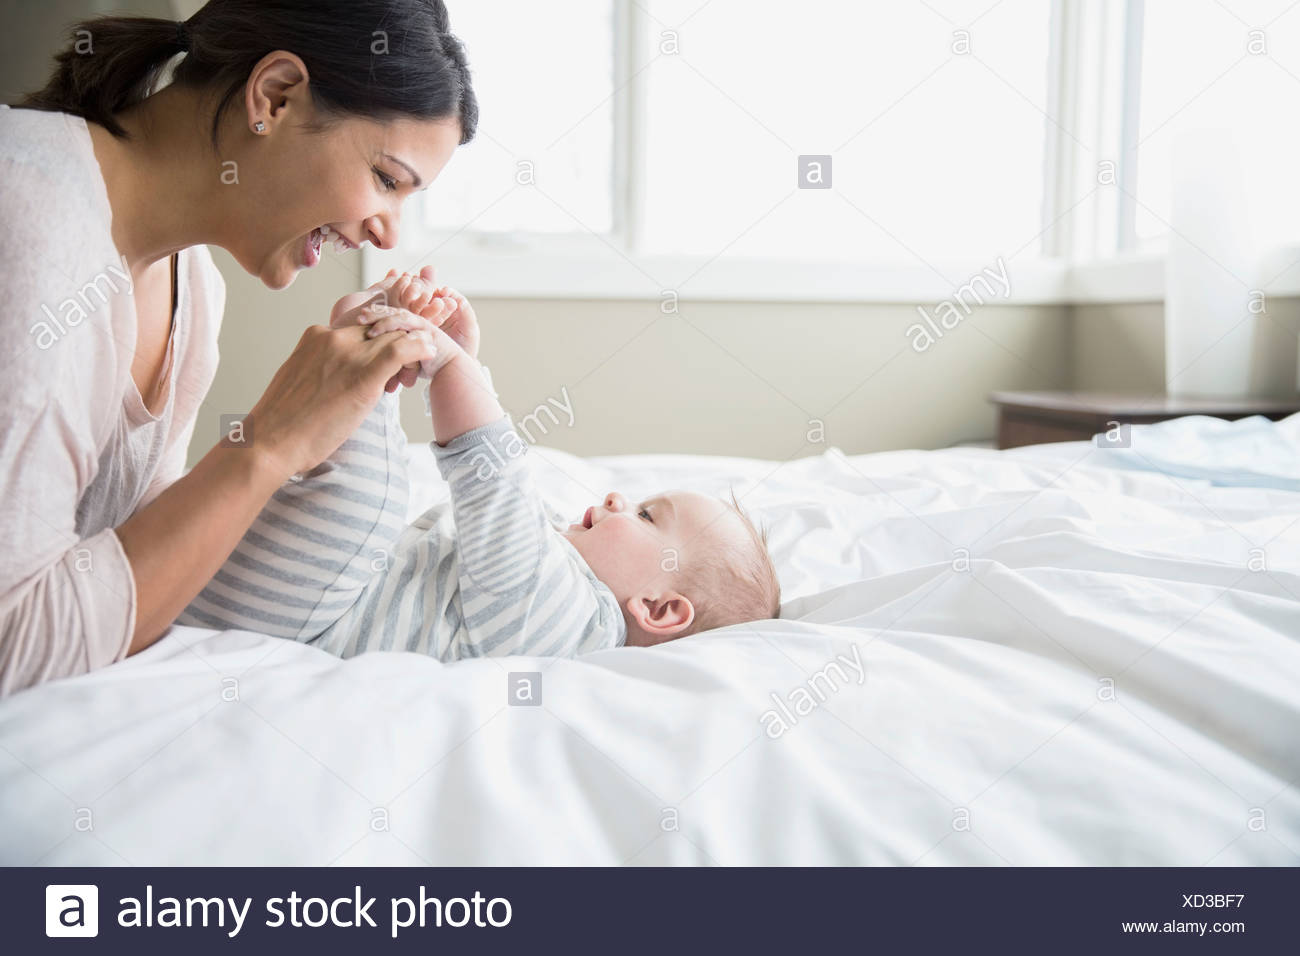 Mother playing with baby on bed - Stock Image